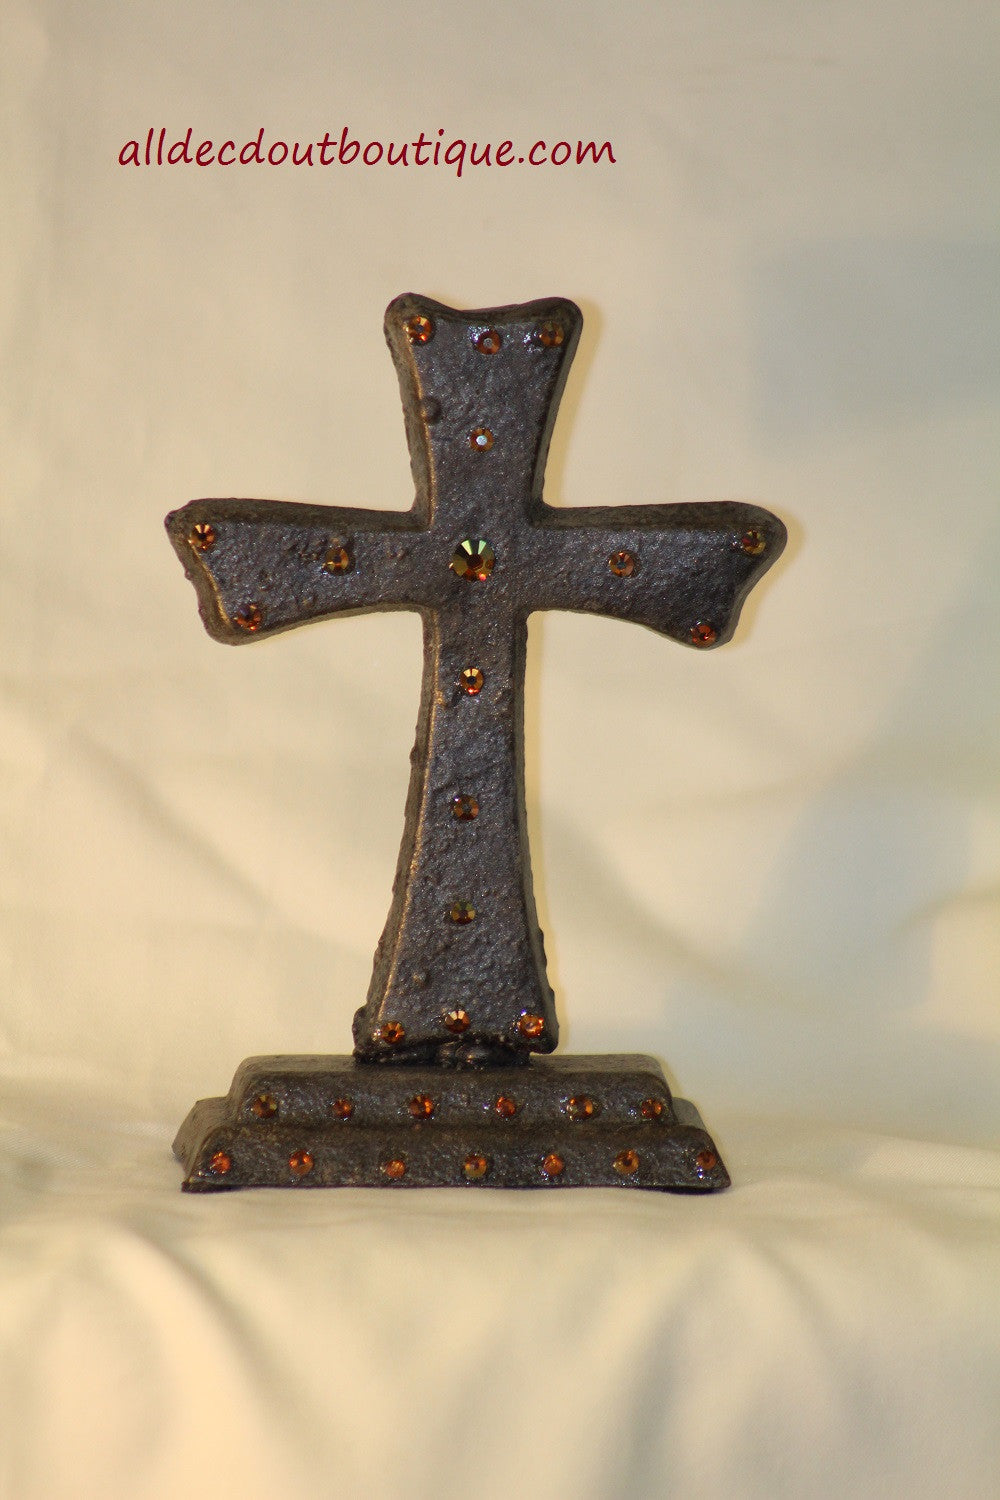 Table Decor | Metal Embellished Cross - All Decd Out